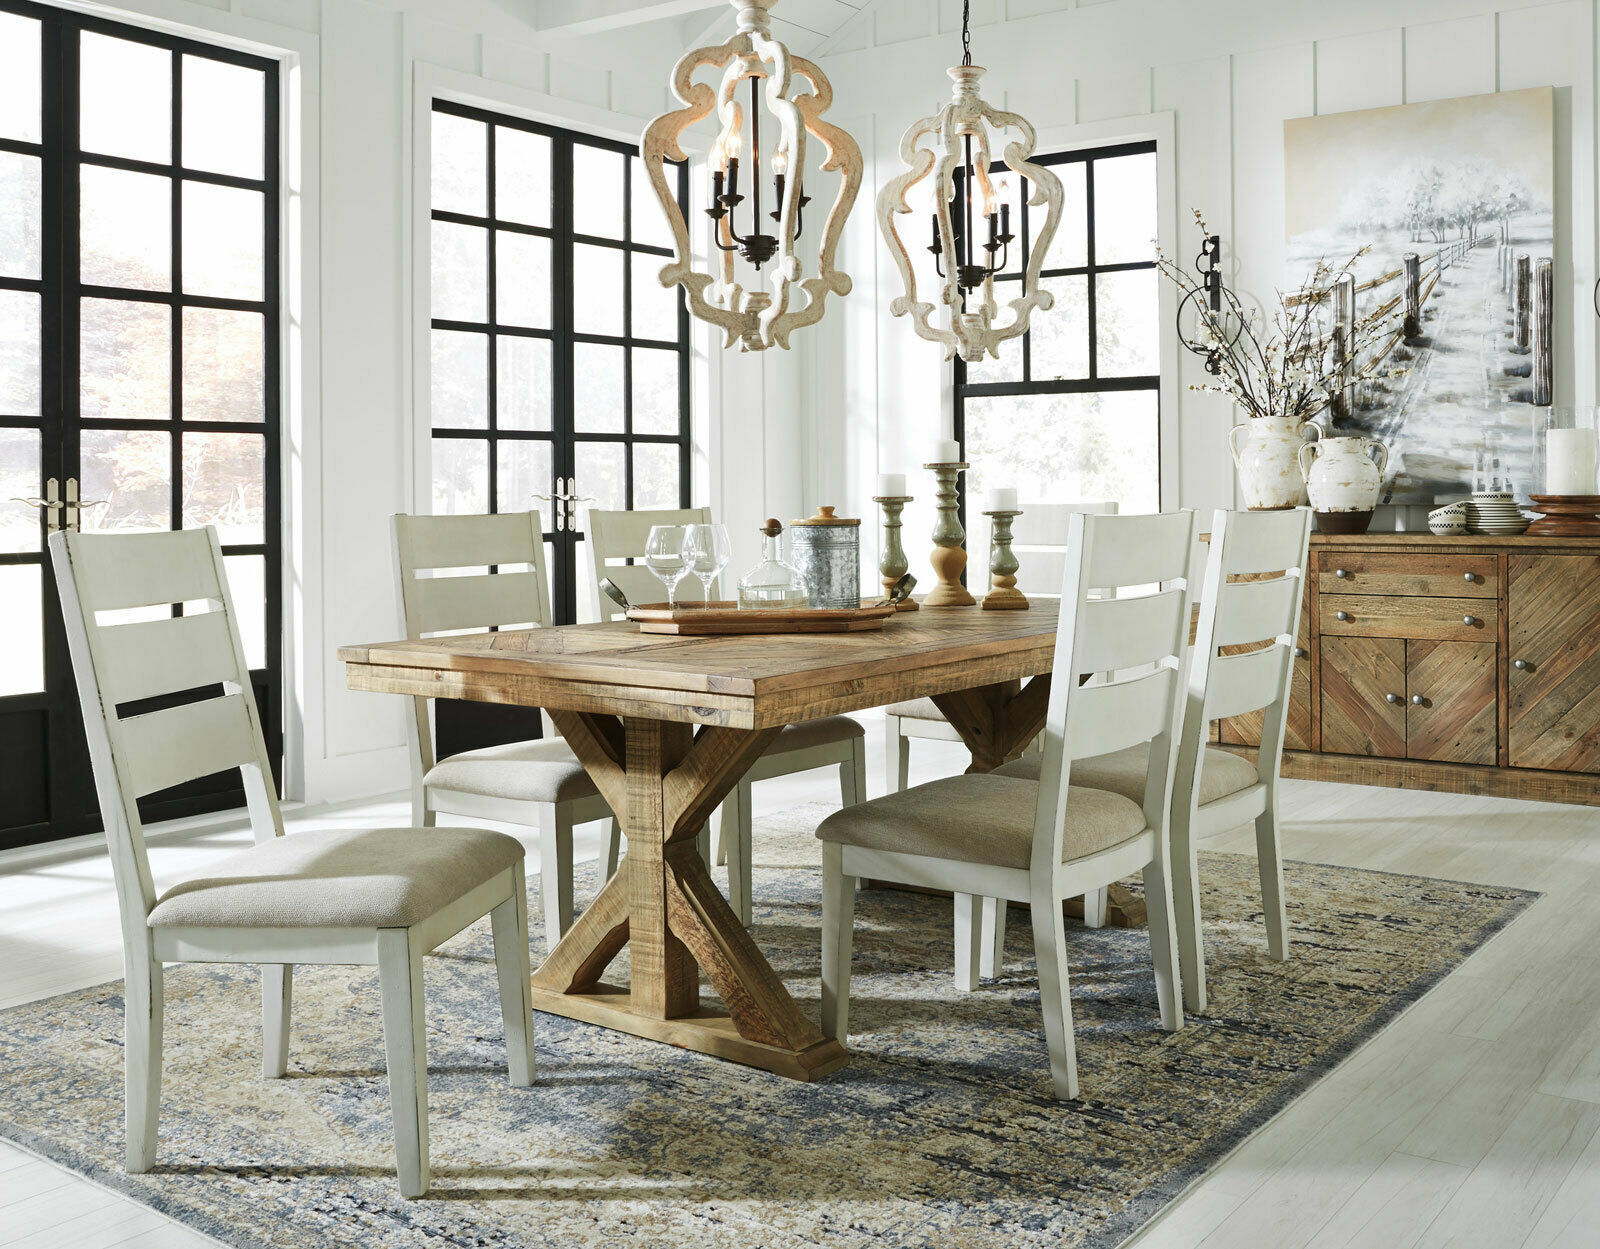 dining room design ideas white chair and brown square table | Cottage Design Dining Room 7pcs Rectangular Brown Table ...